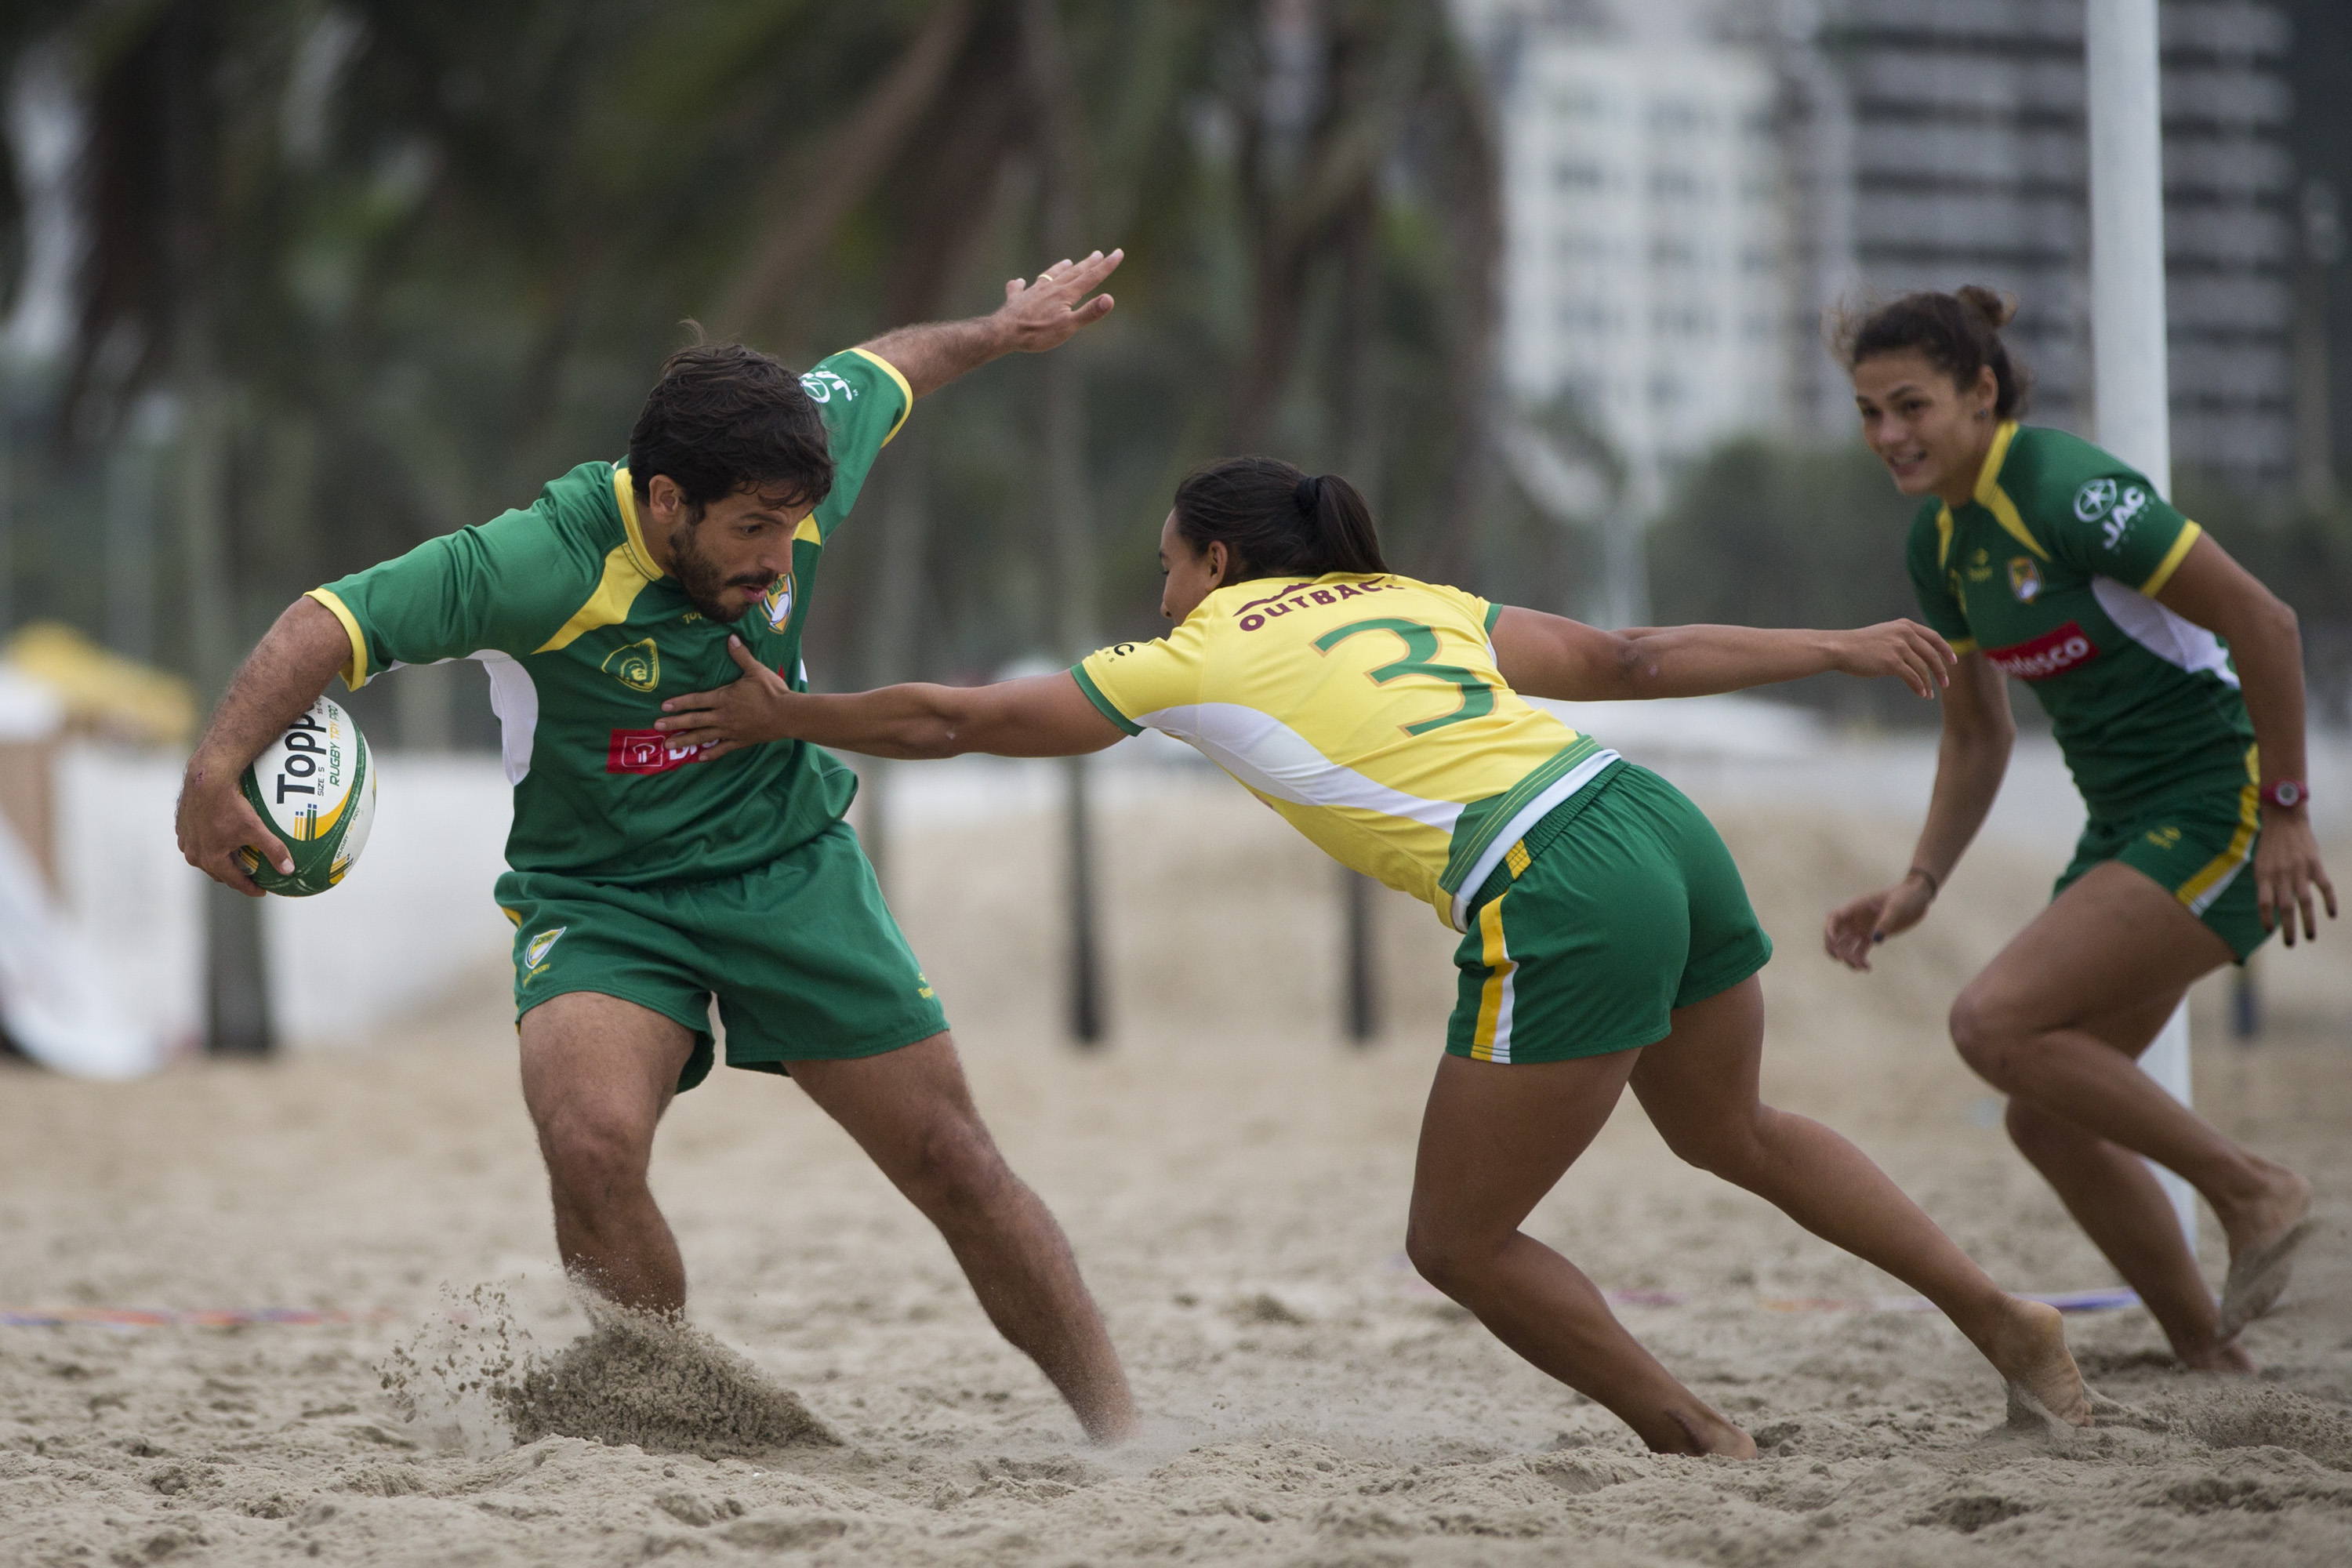 Brazilian athletes play Rugby in a newly inaugurated Rugby pitch on Copacabana beach in Rio de Janeiro, Brazil, Wednesday, June 24, 2015. The pitch will be a long-lasting fixture on Rio's iconic Copacabana beach until the Rio 2016 Olympics, when Rugby wil